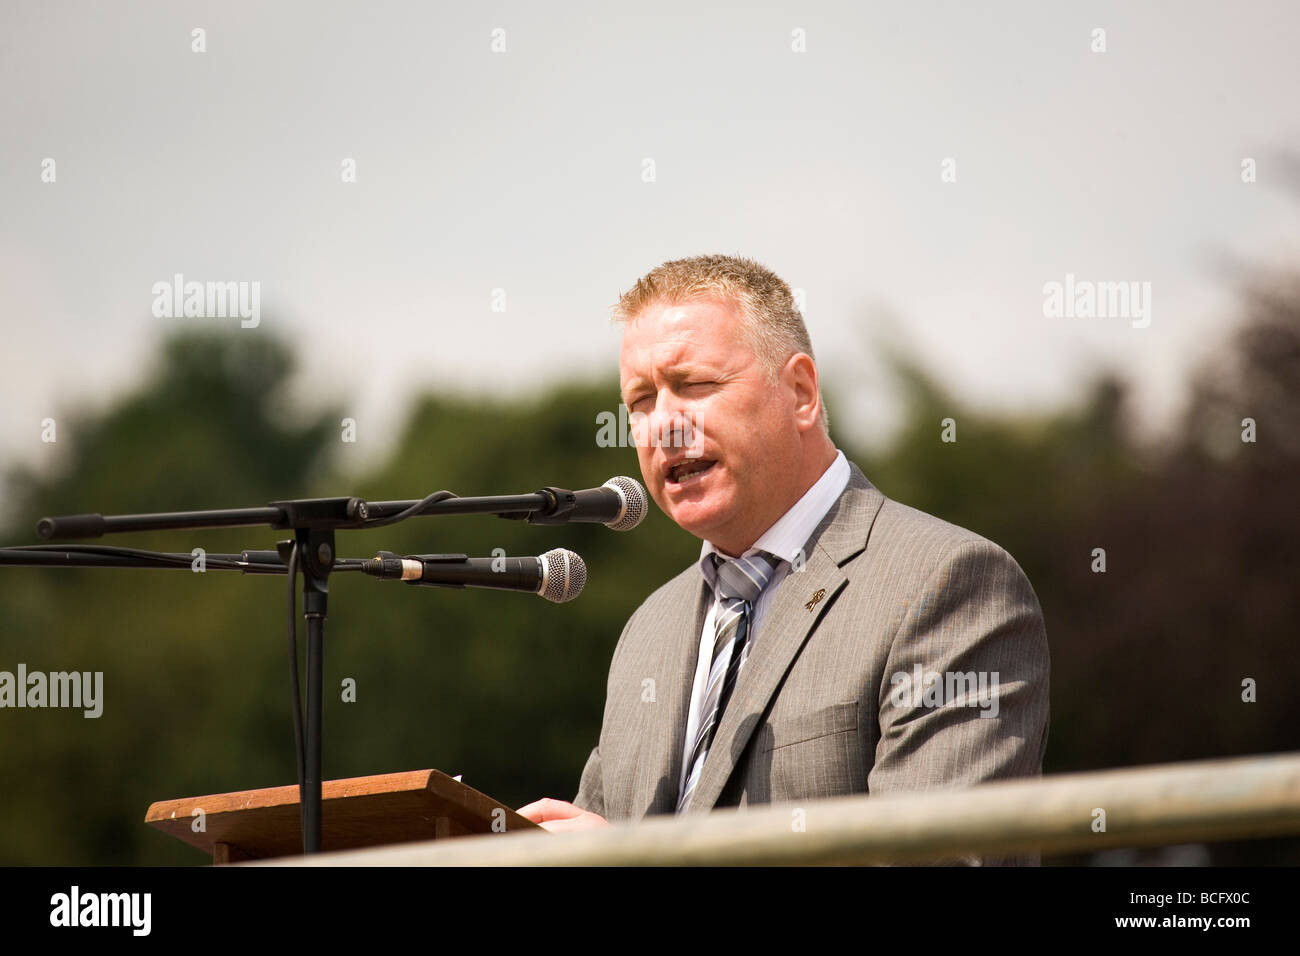 Ian Lavery the Chairman of the National Union of Mineworkers (NUM) speaks at the 2009 Durham Miners Gala. - Stock Image